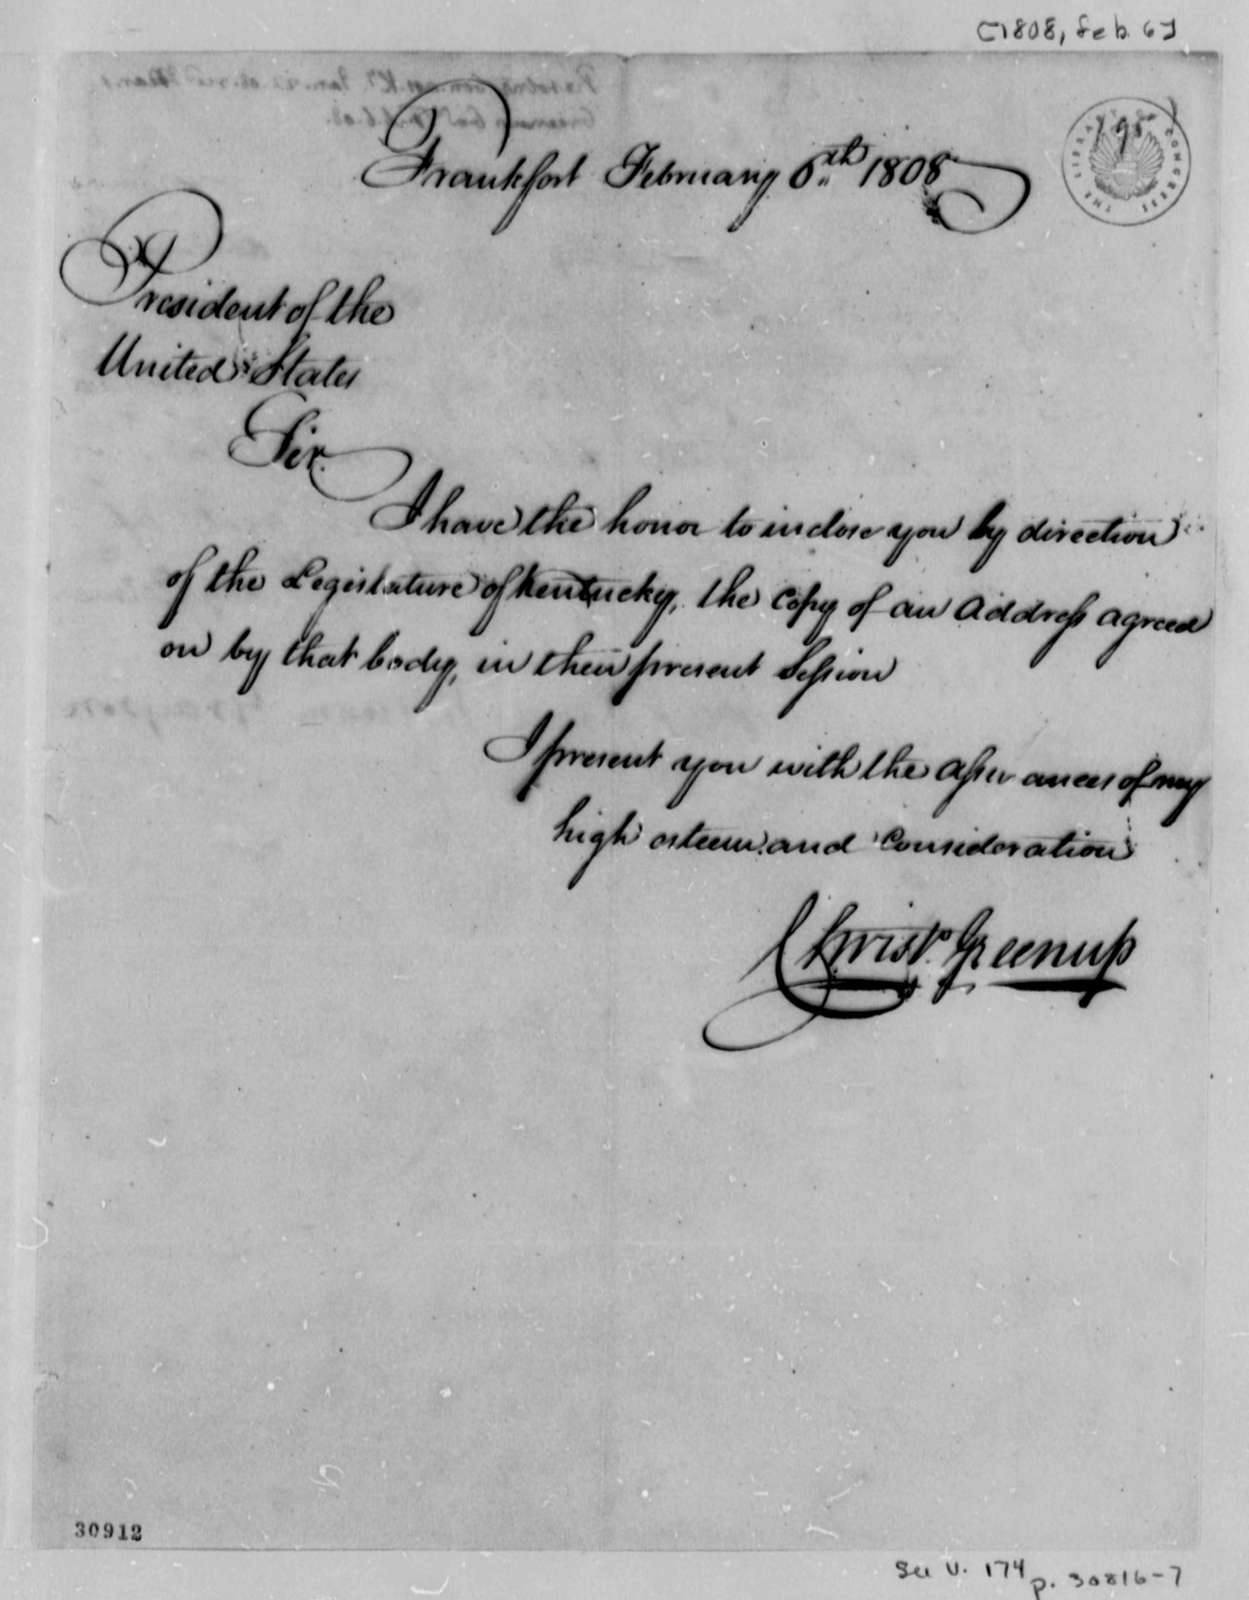 Christopher Greenup to Thomas Jefferson, February 6, 1808, Resolution